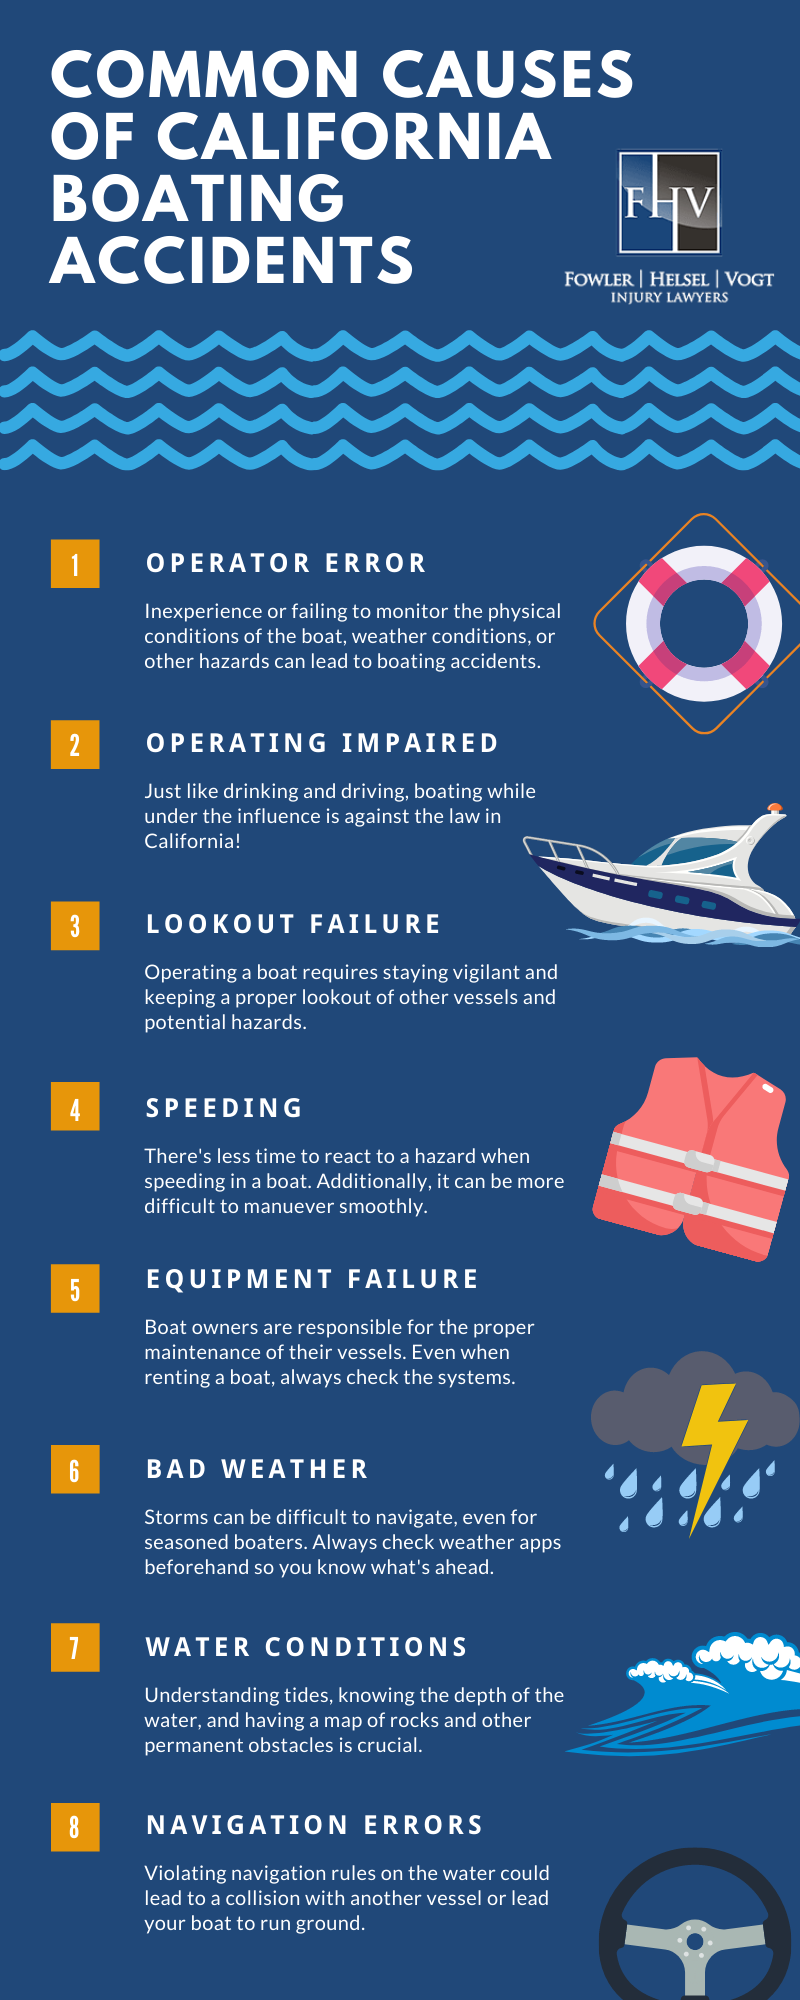 Common causes of boating accidents in California infographic